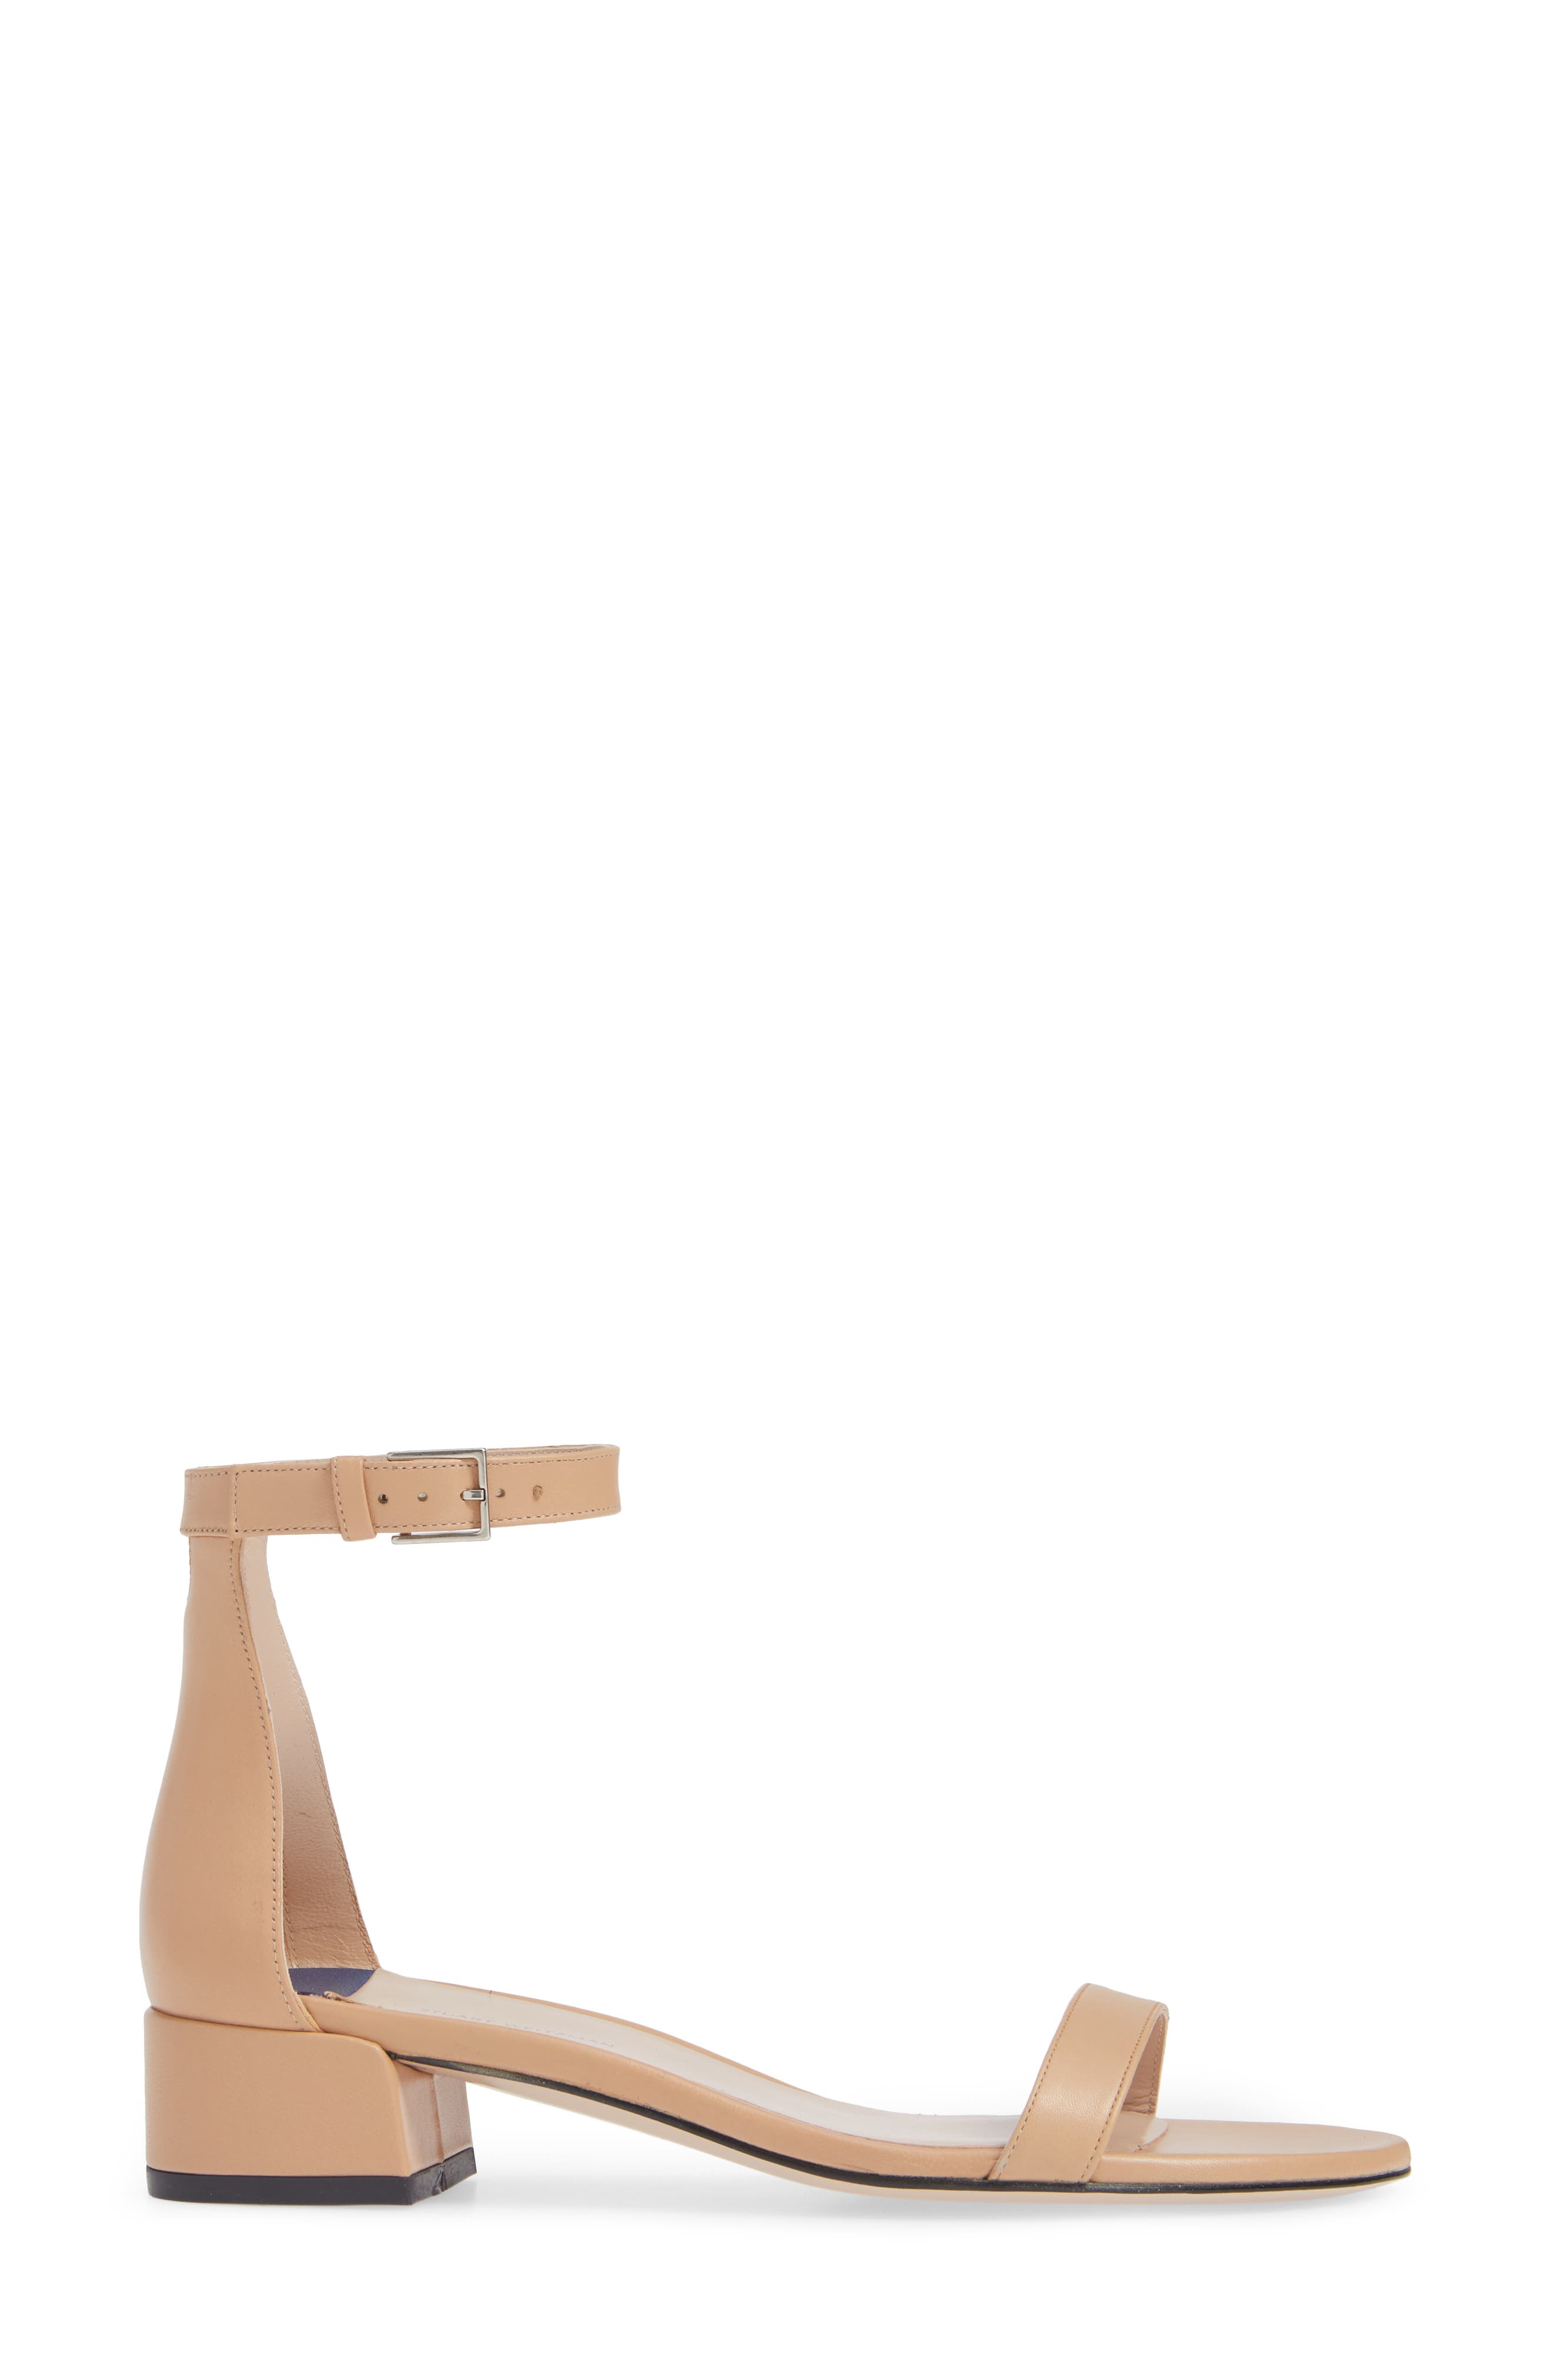 STUART WEITZMAN,                             Nudist Sandal,                             Alternate thumbnail 3, color,                             273